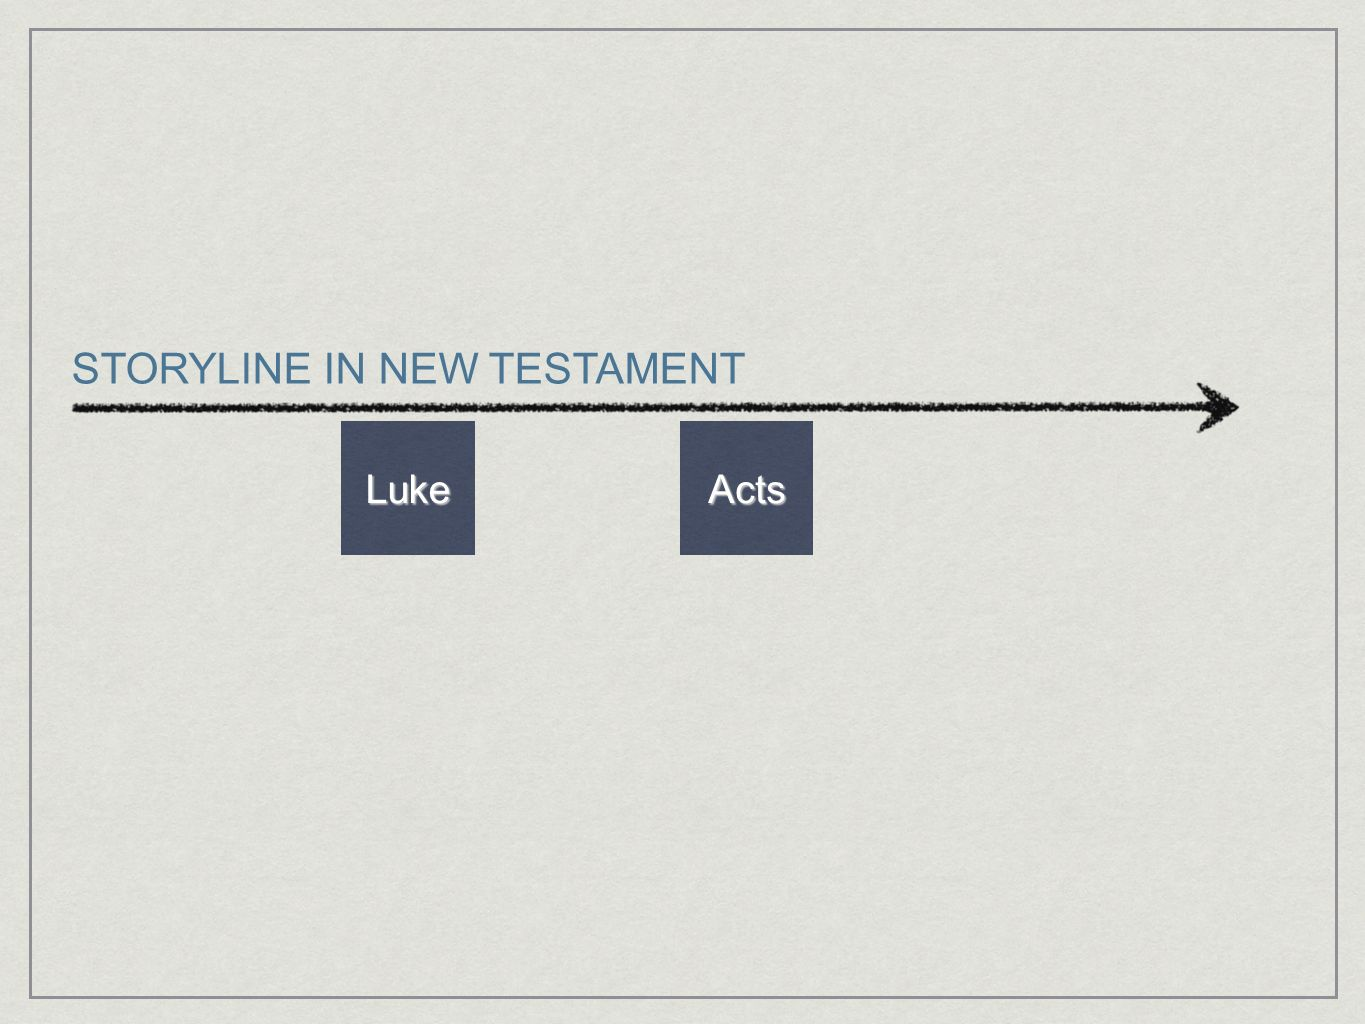 STORYLINE IN NEW TESTAMENT